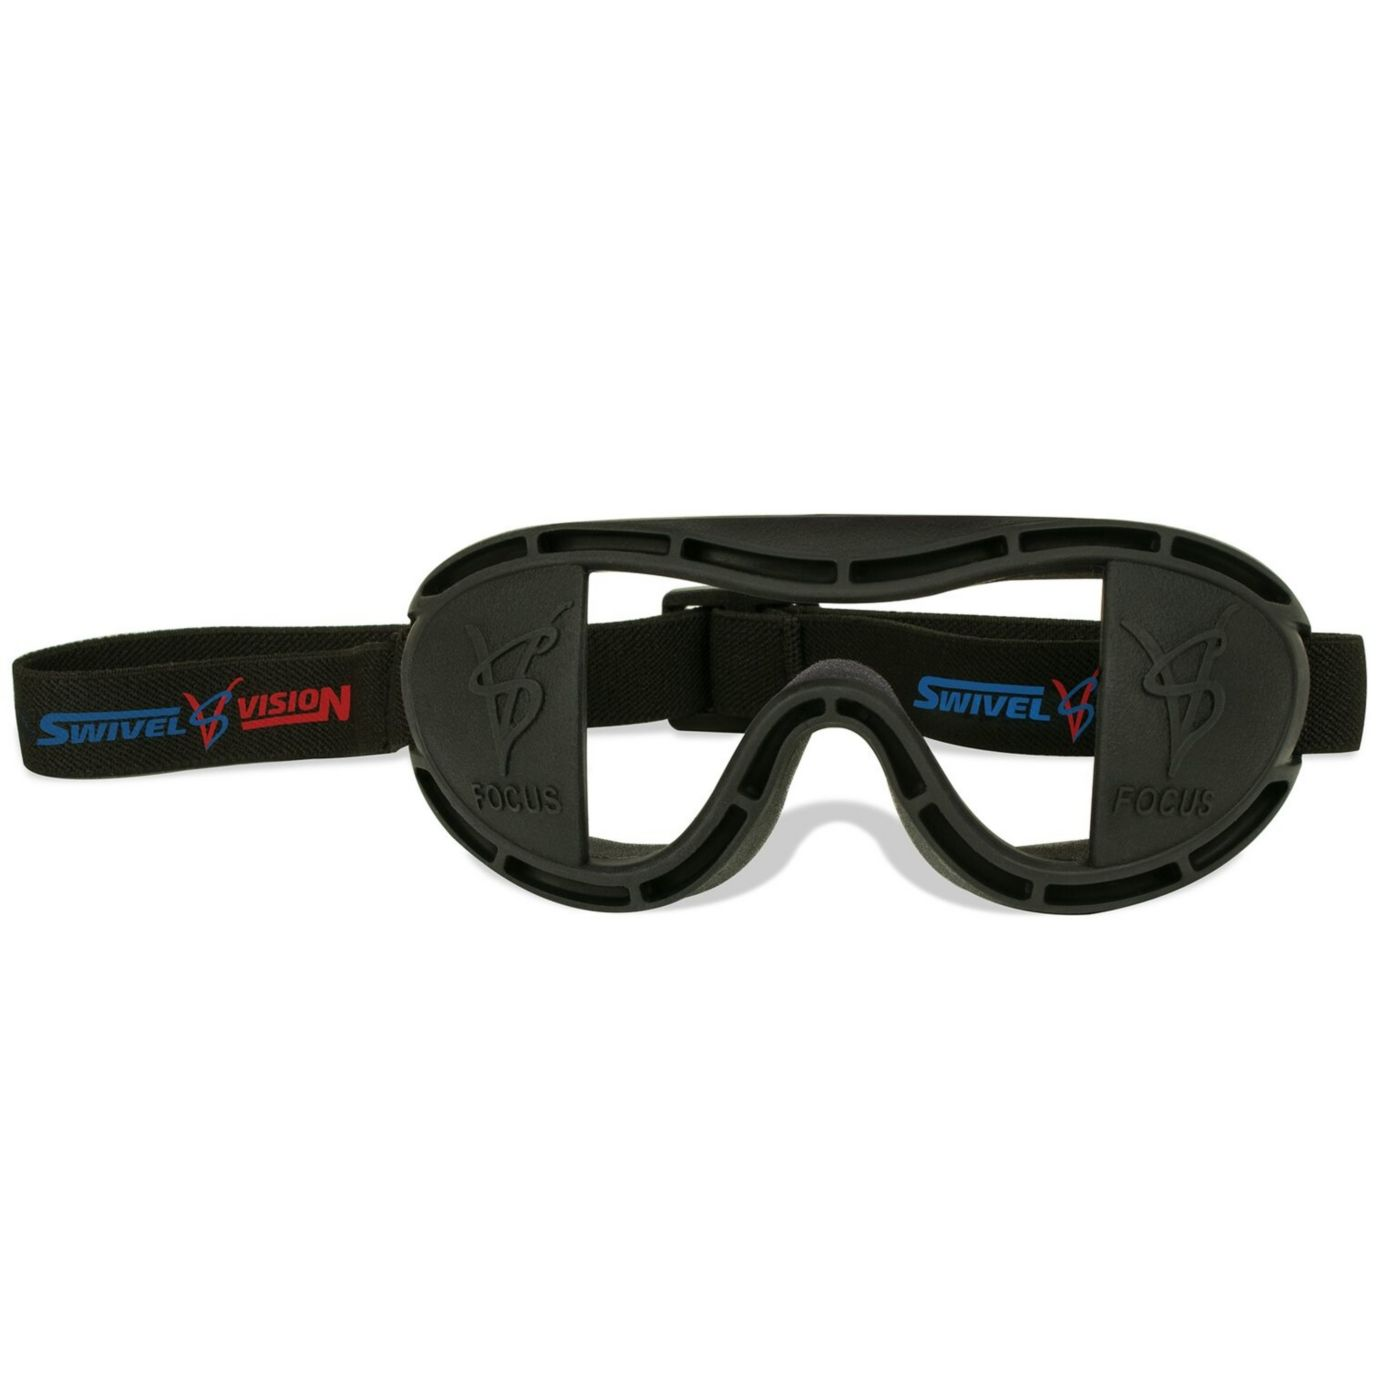 Swivel Vision Athletic Training Goggles